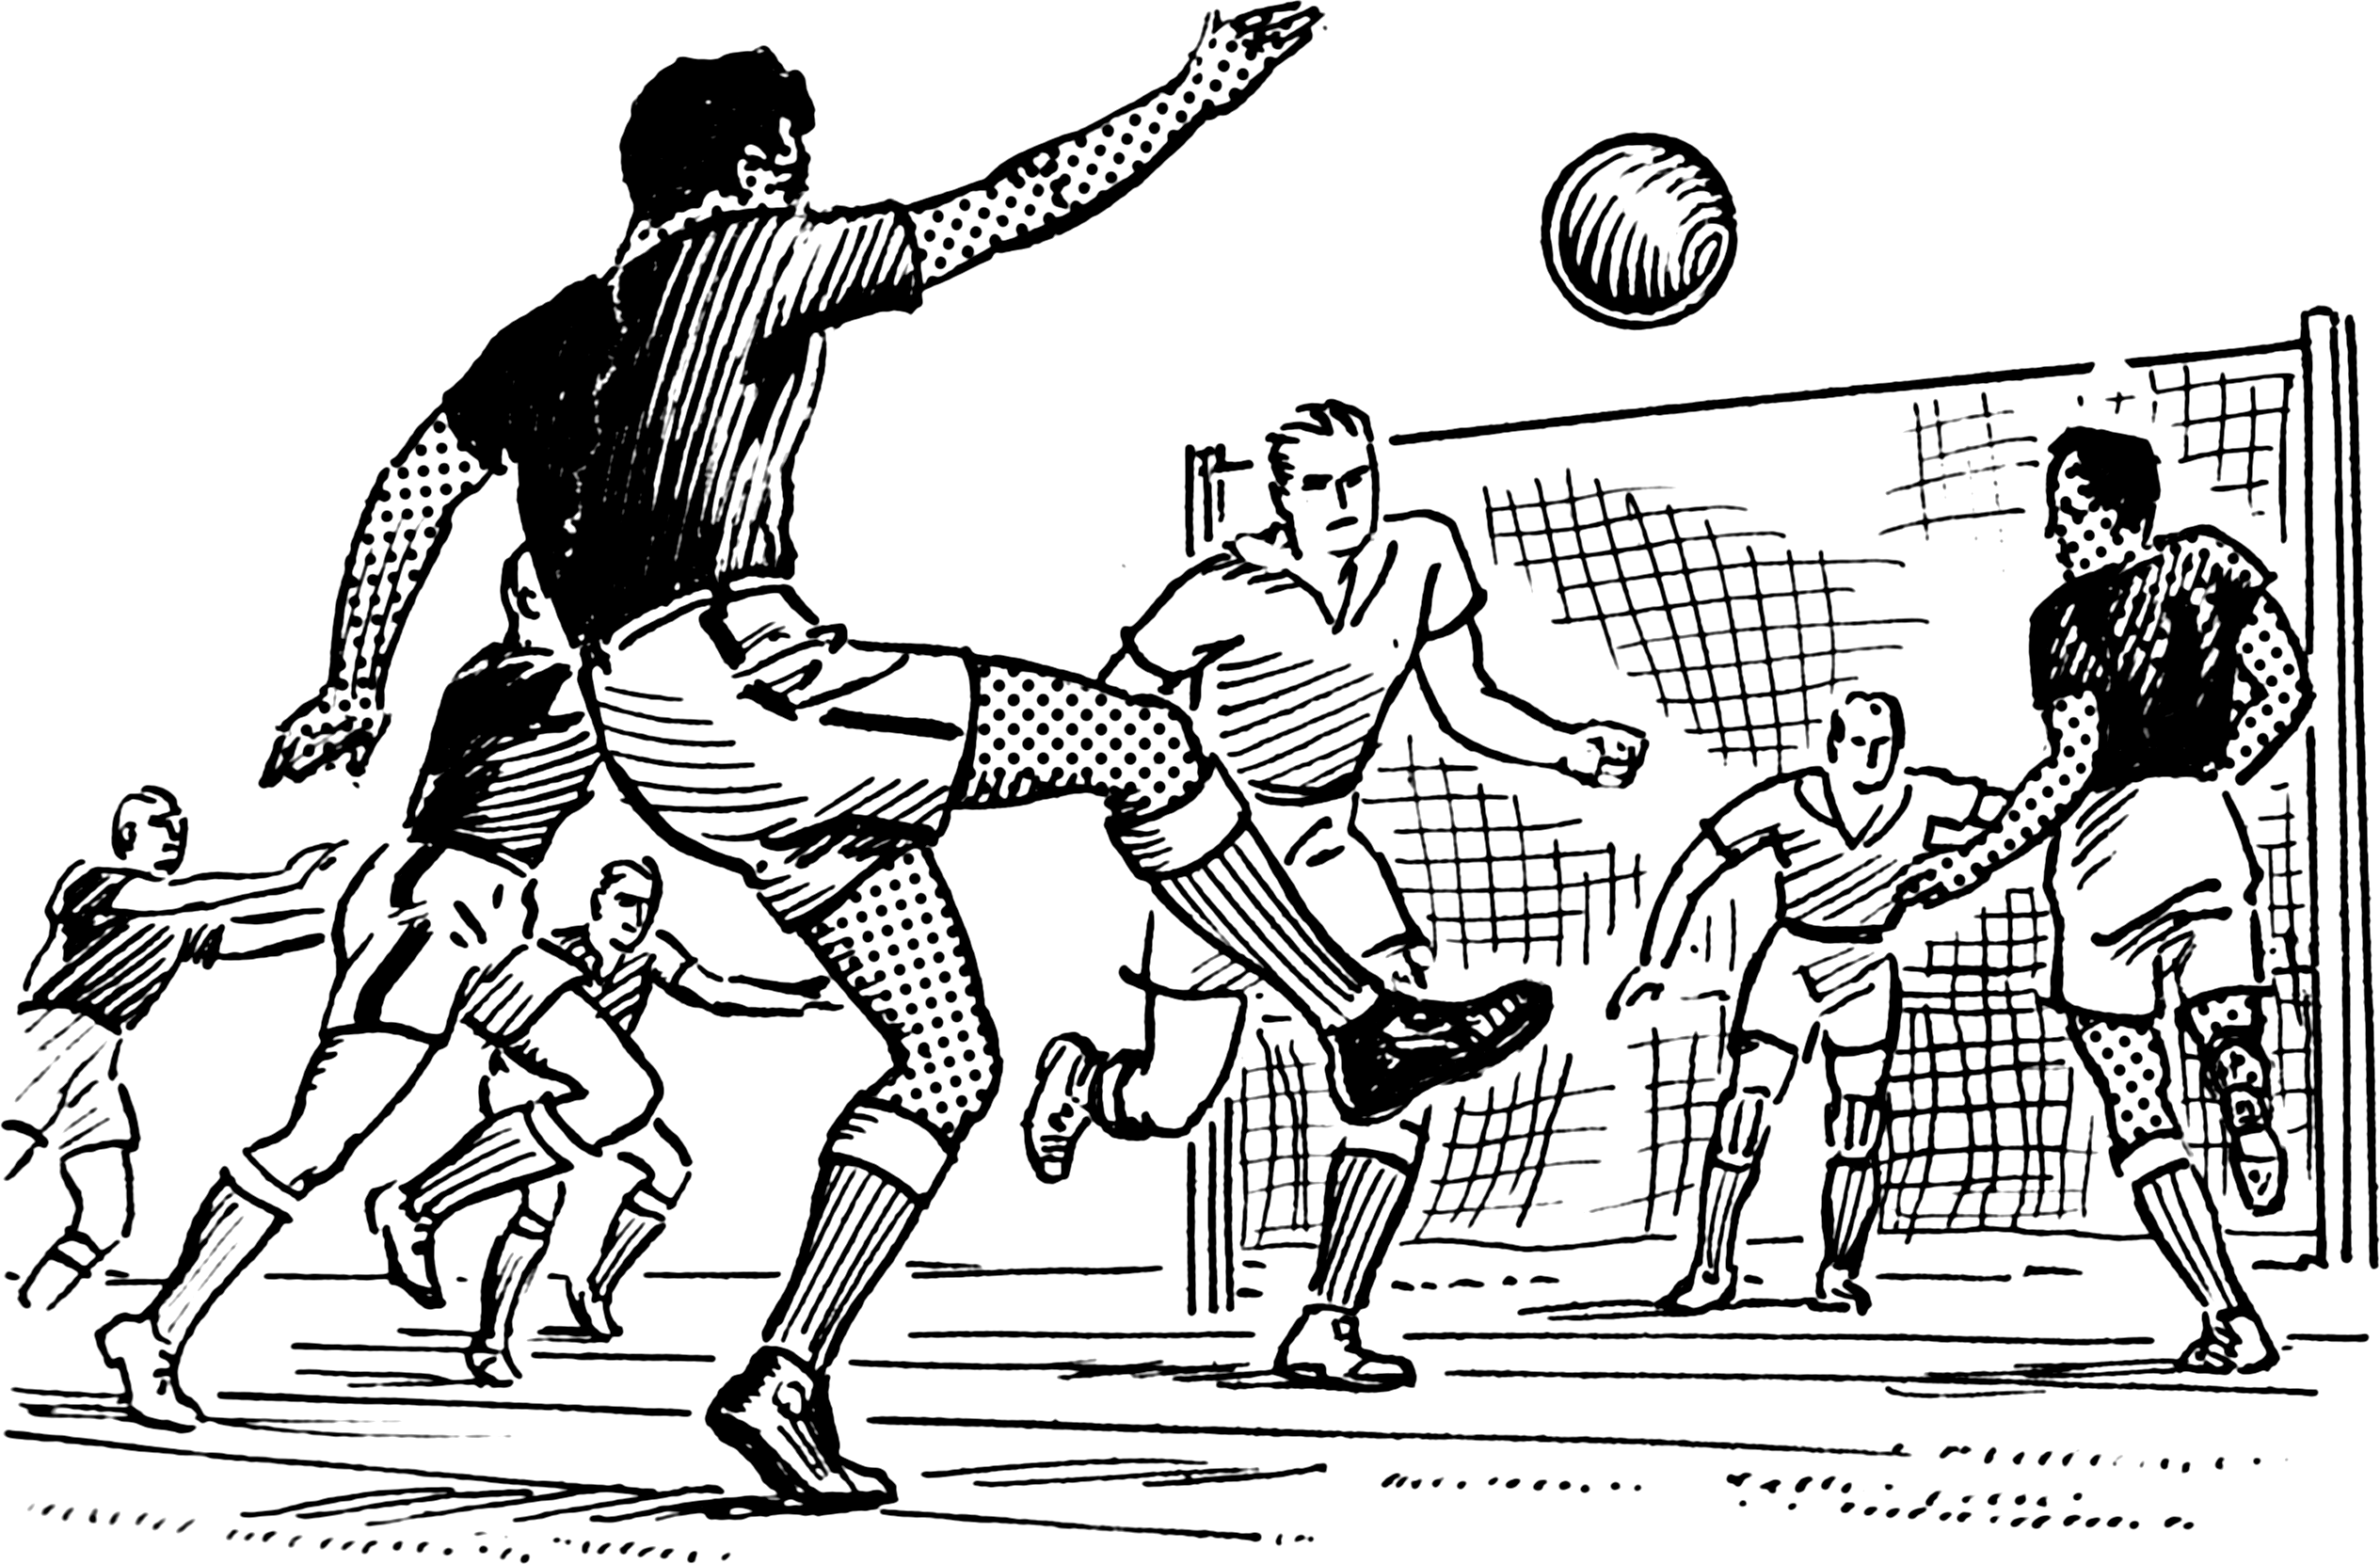 Match clipart unhealthy habit File:Soccer png Commons (PSF) Wikimedia